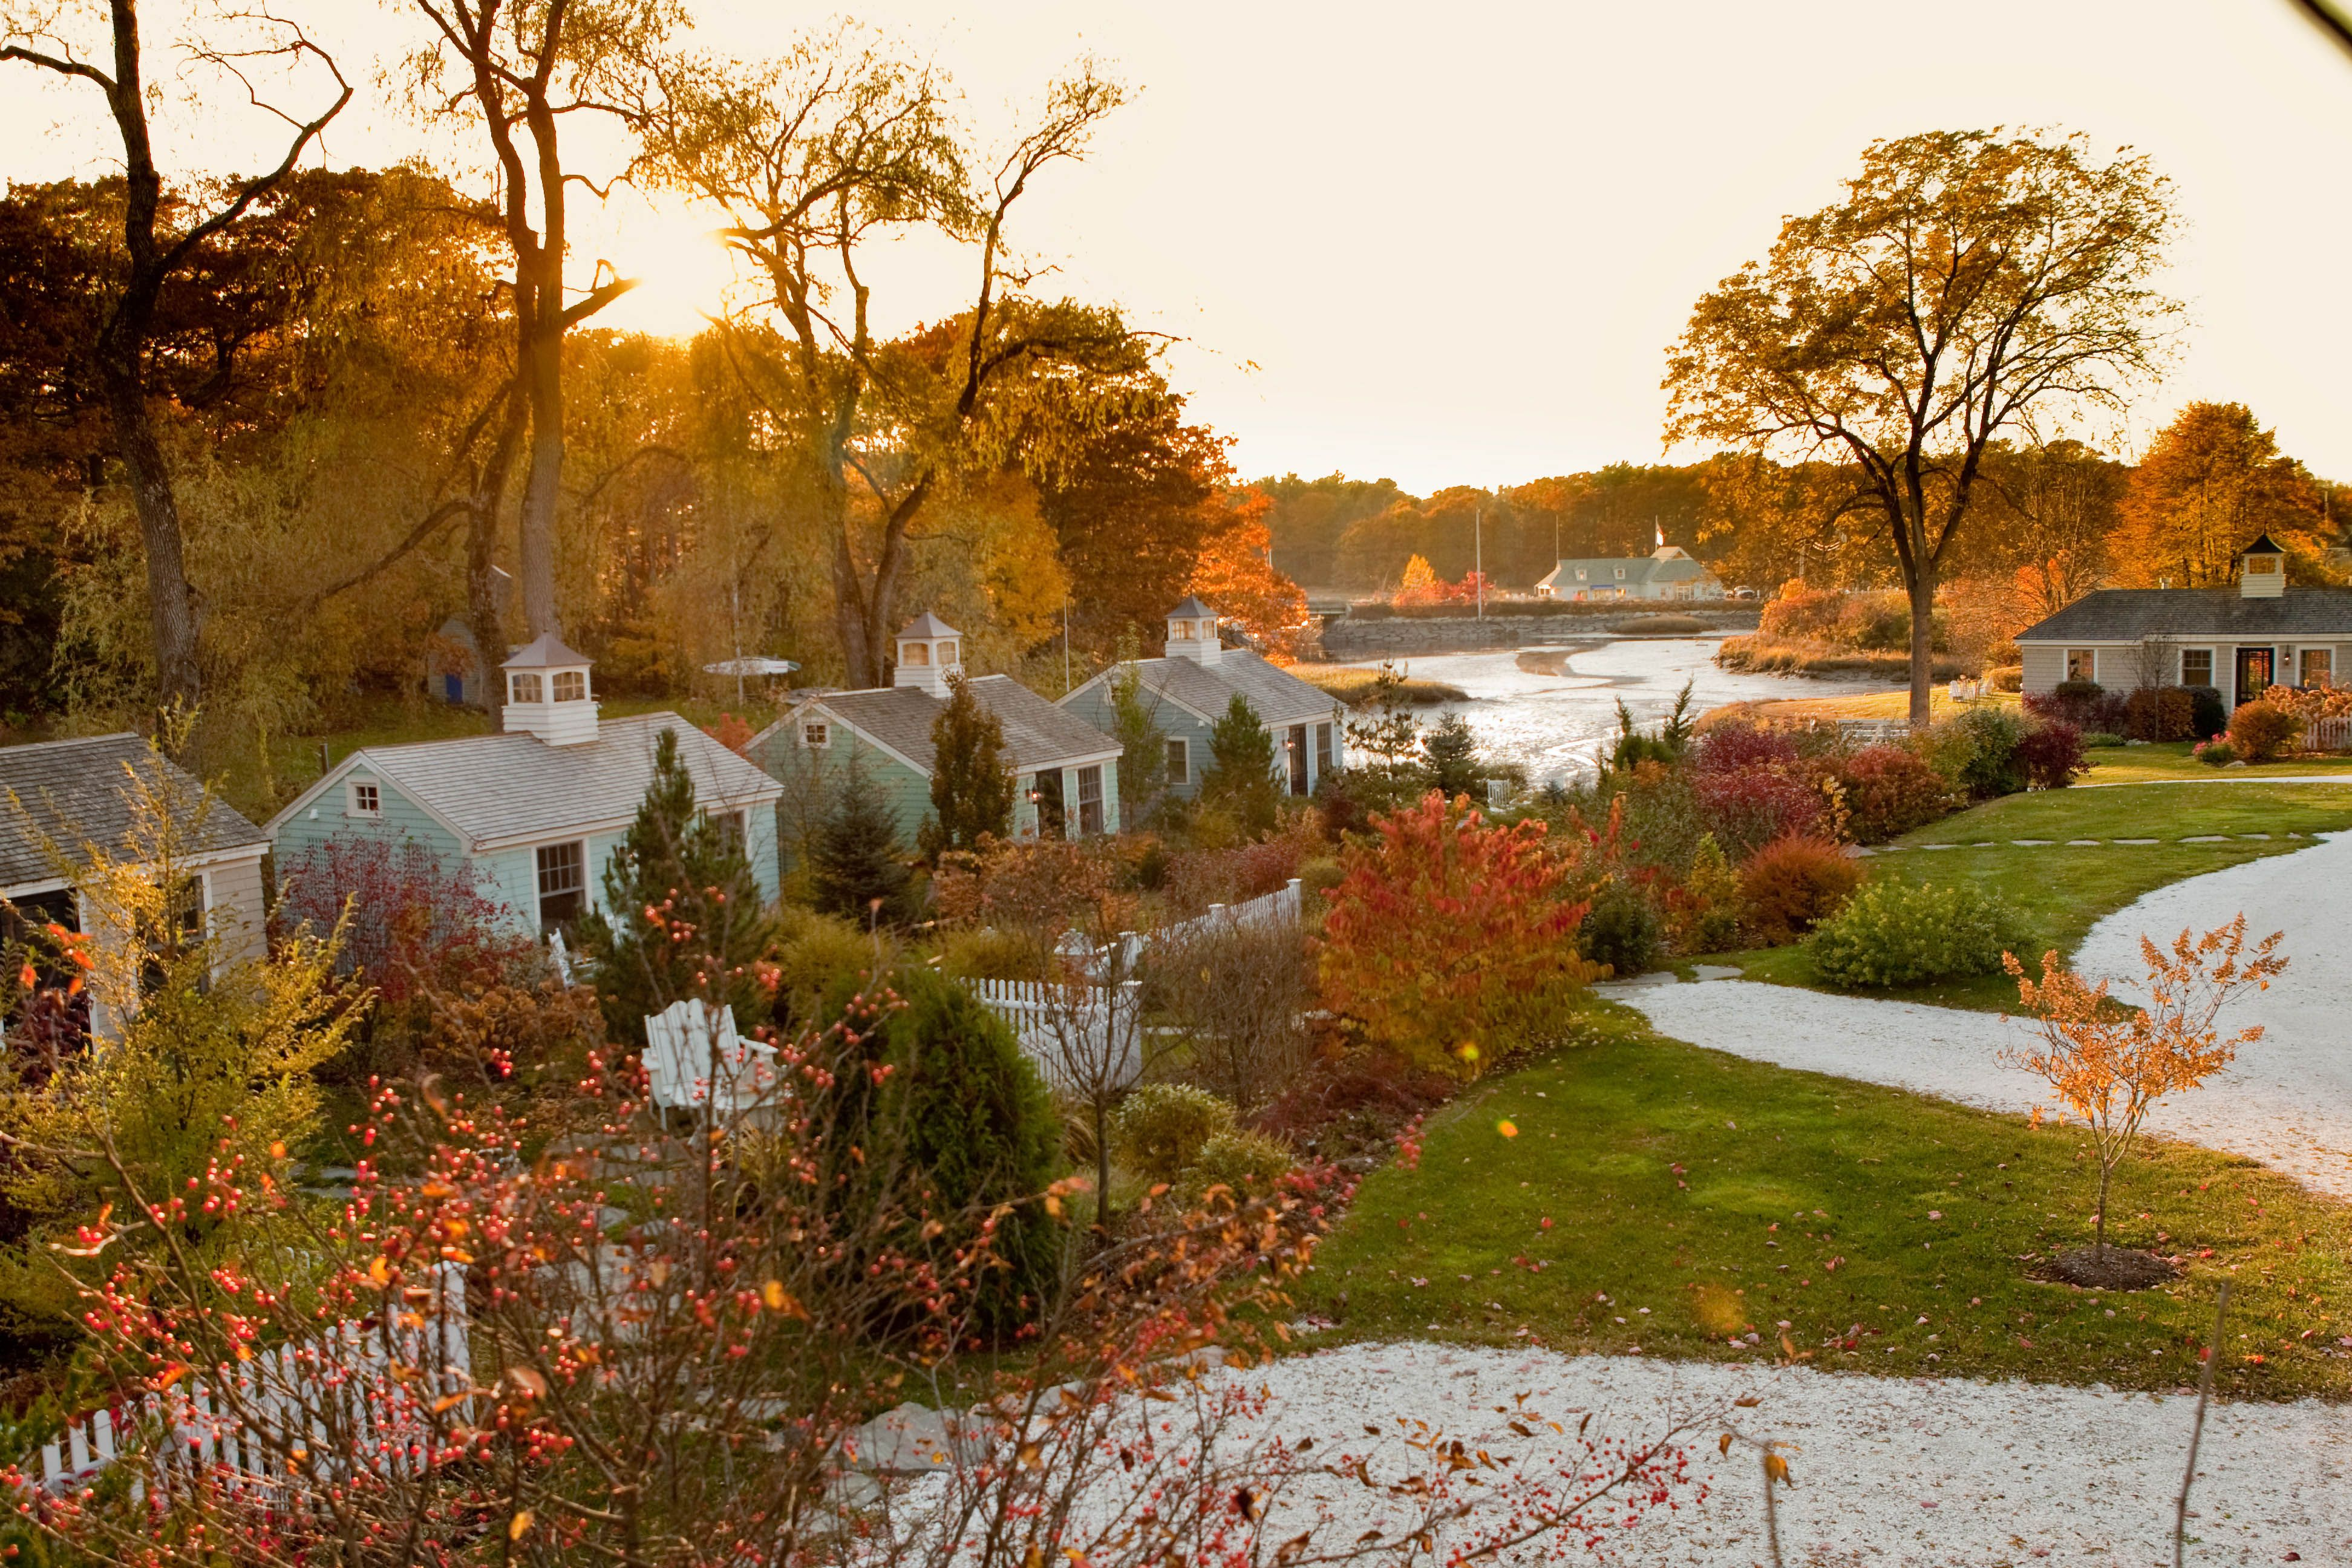 cabot cove cottages kennebunkport maine i want to go to there rh pinterest com Downtown Kennebunkport Maine Bush Compound Kennebunkport Maine